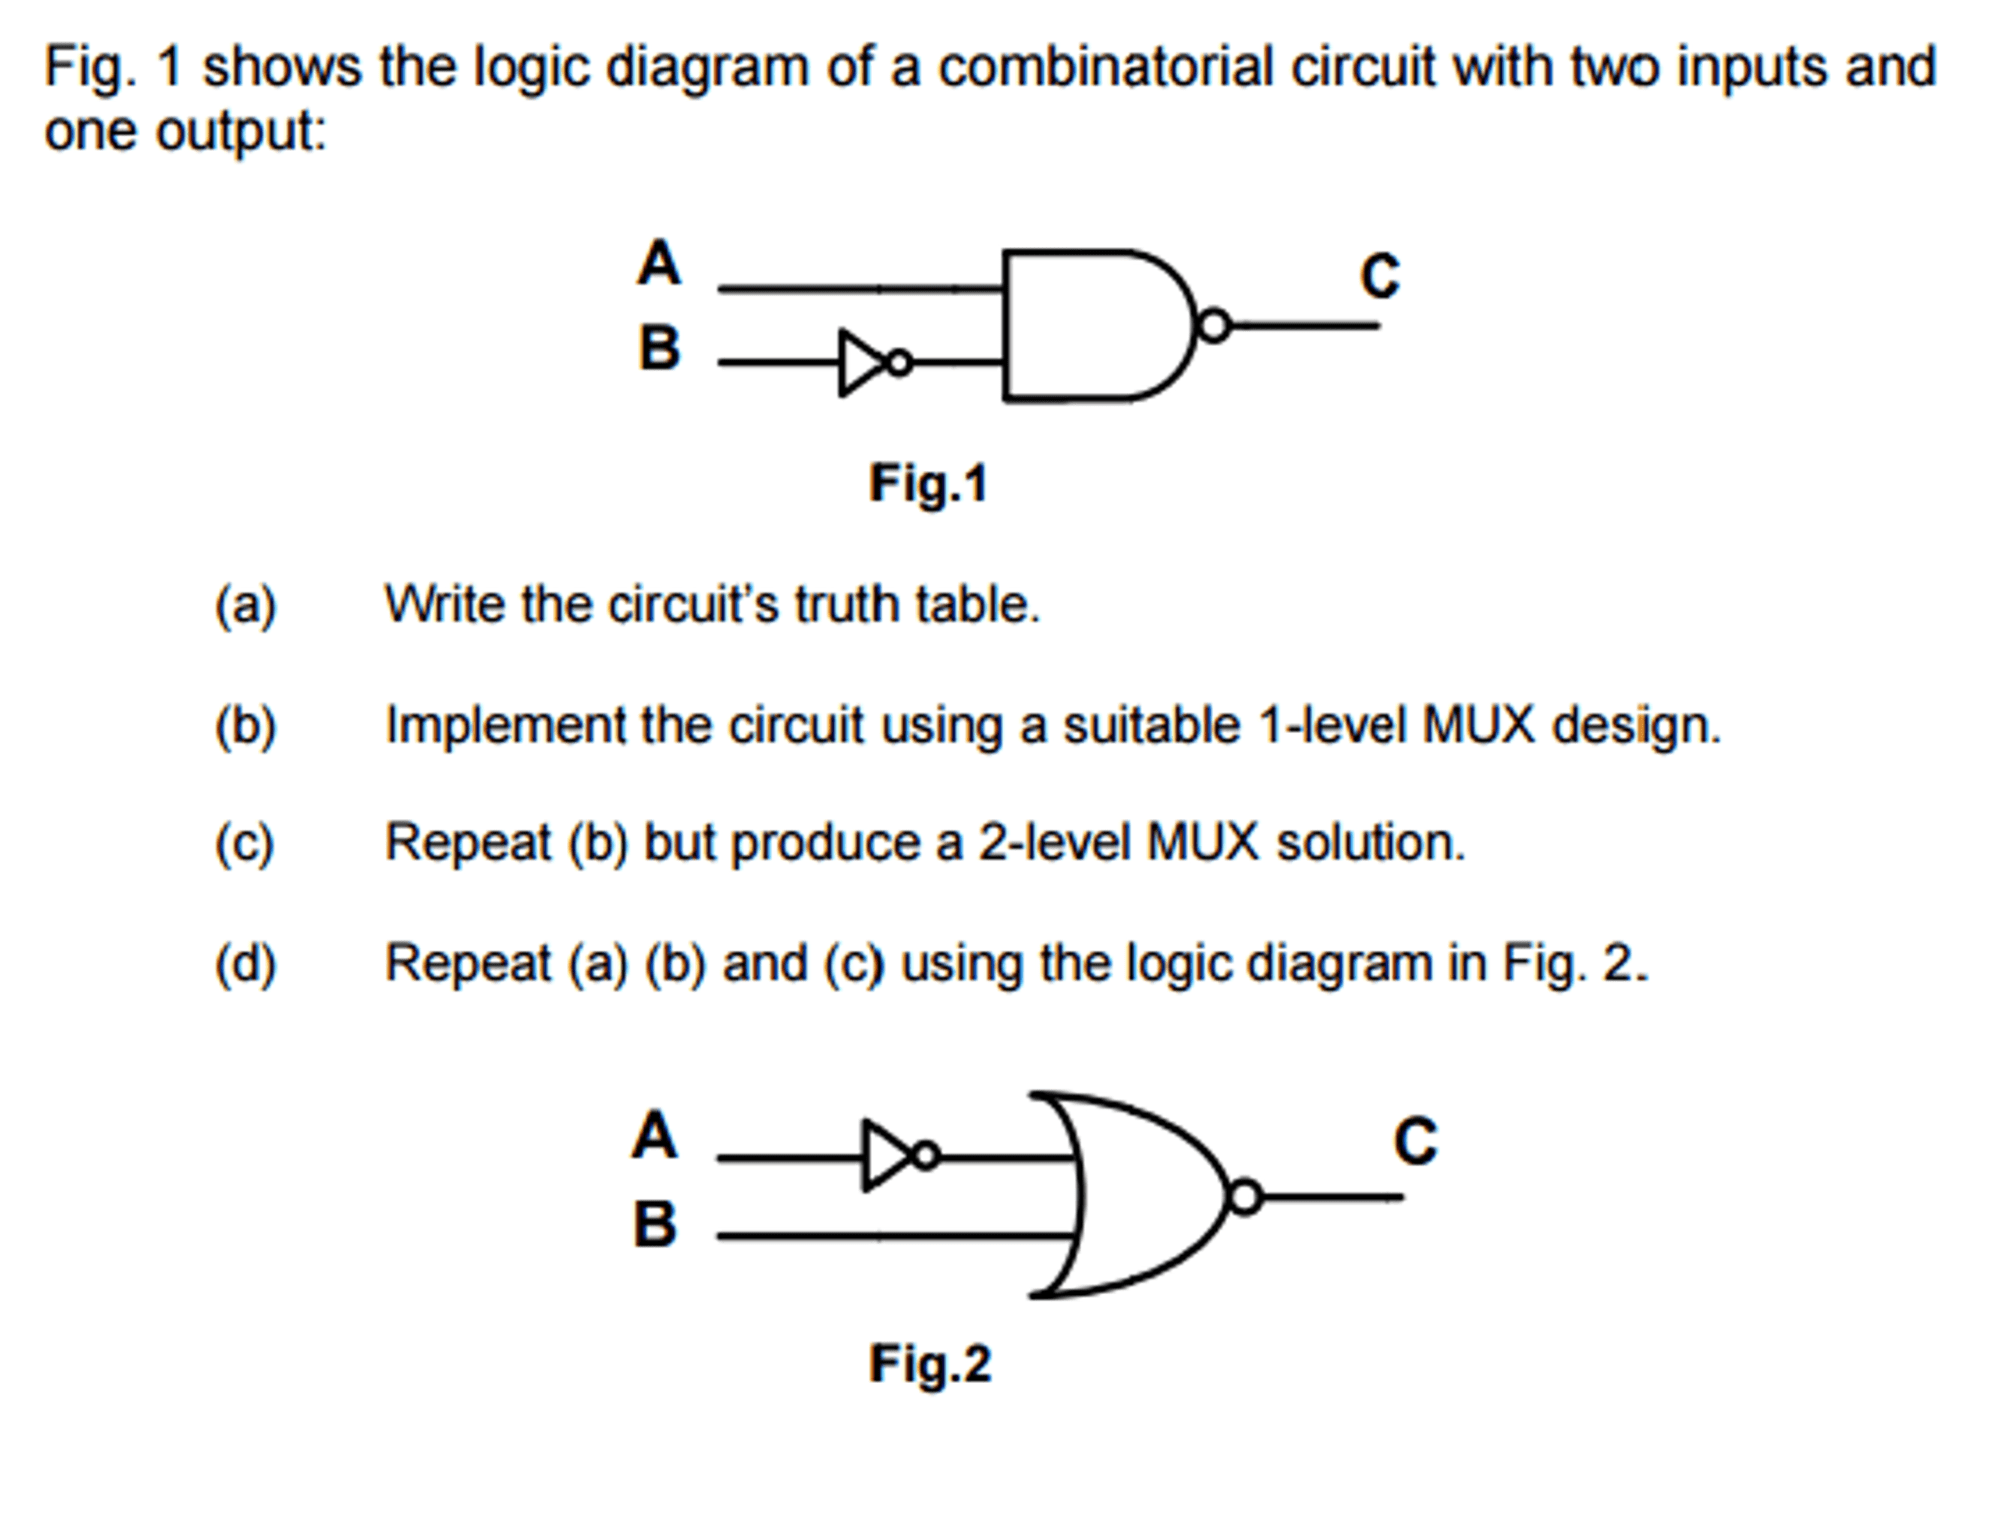 hight resolution of solved fig 1 shows the logic diagram of a combinatorial1 shows the logic diagram of a